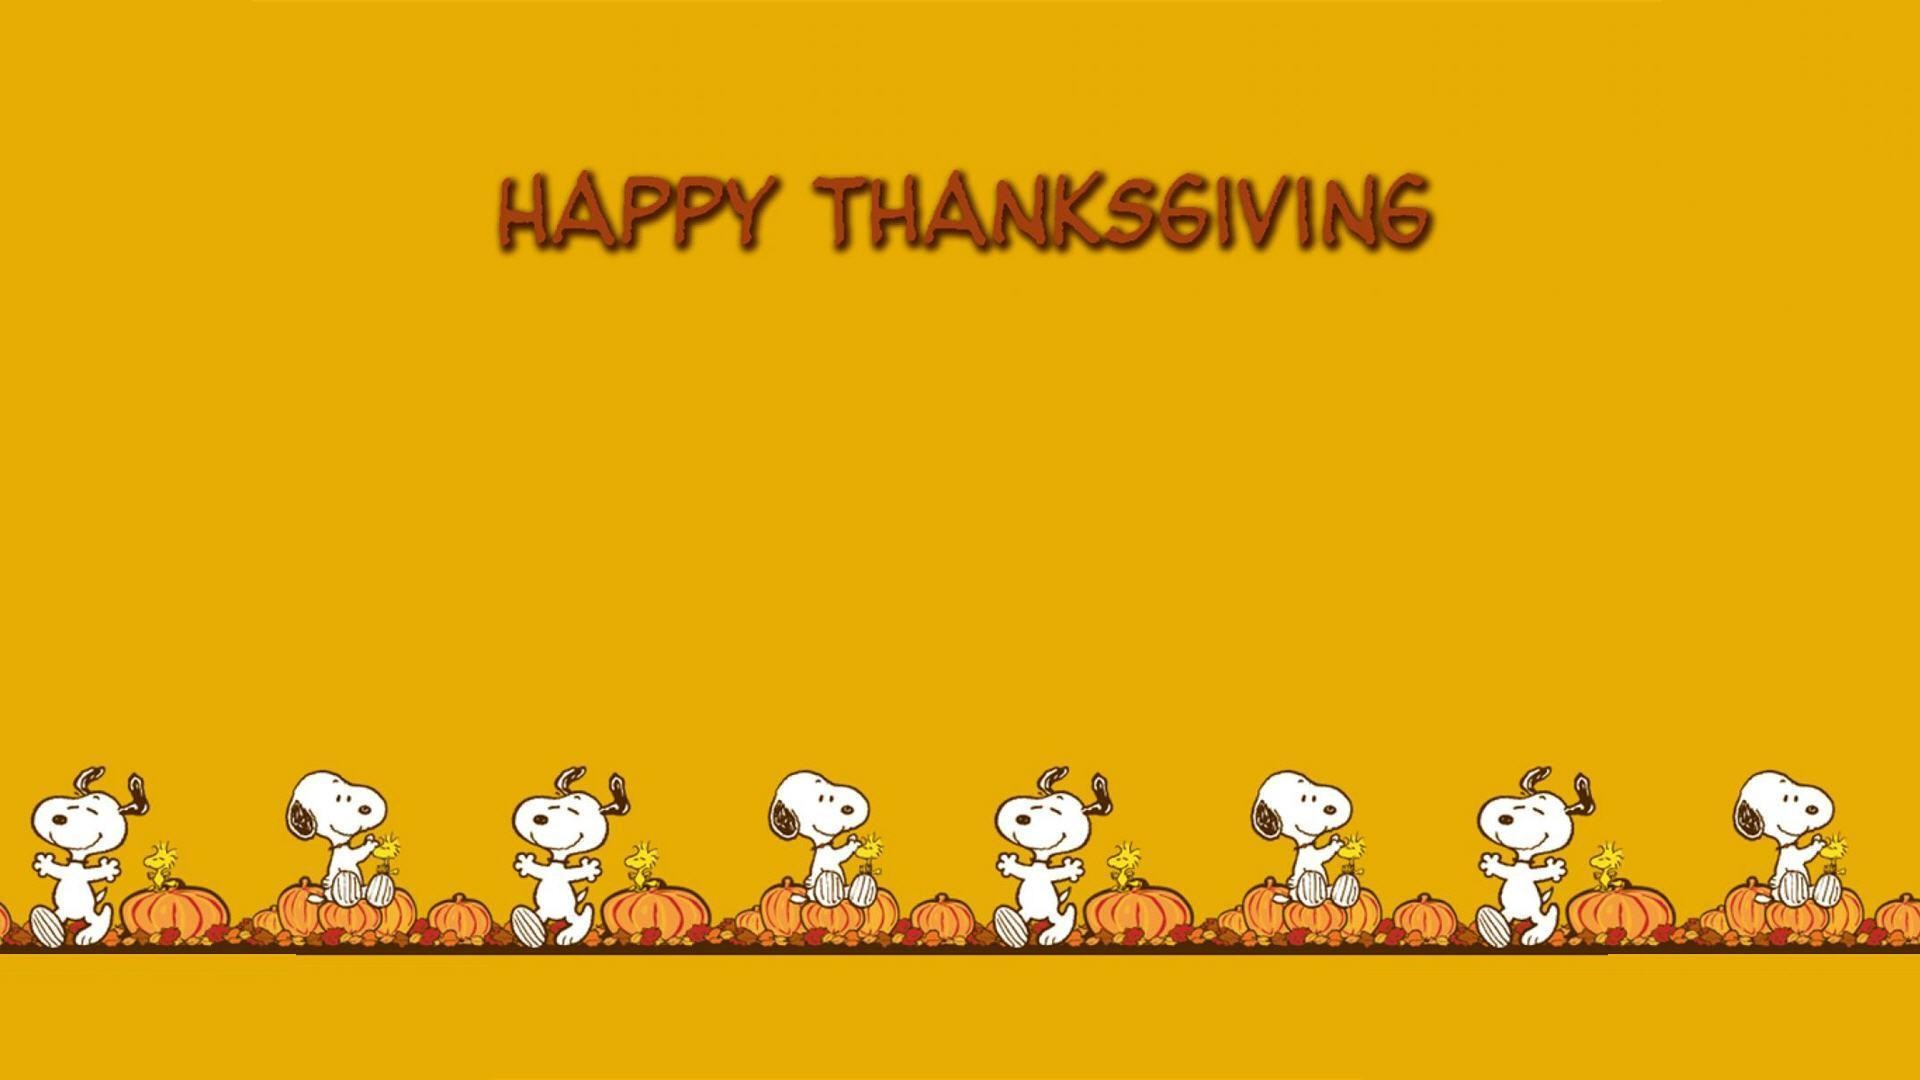 1920x1080 peanuts thanksgiving wallpaper 1351 download free hd desktop